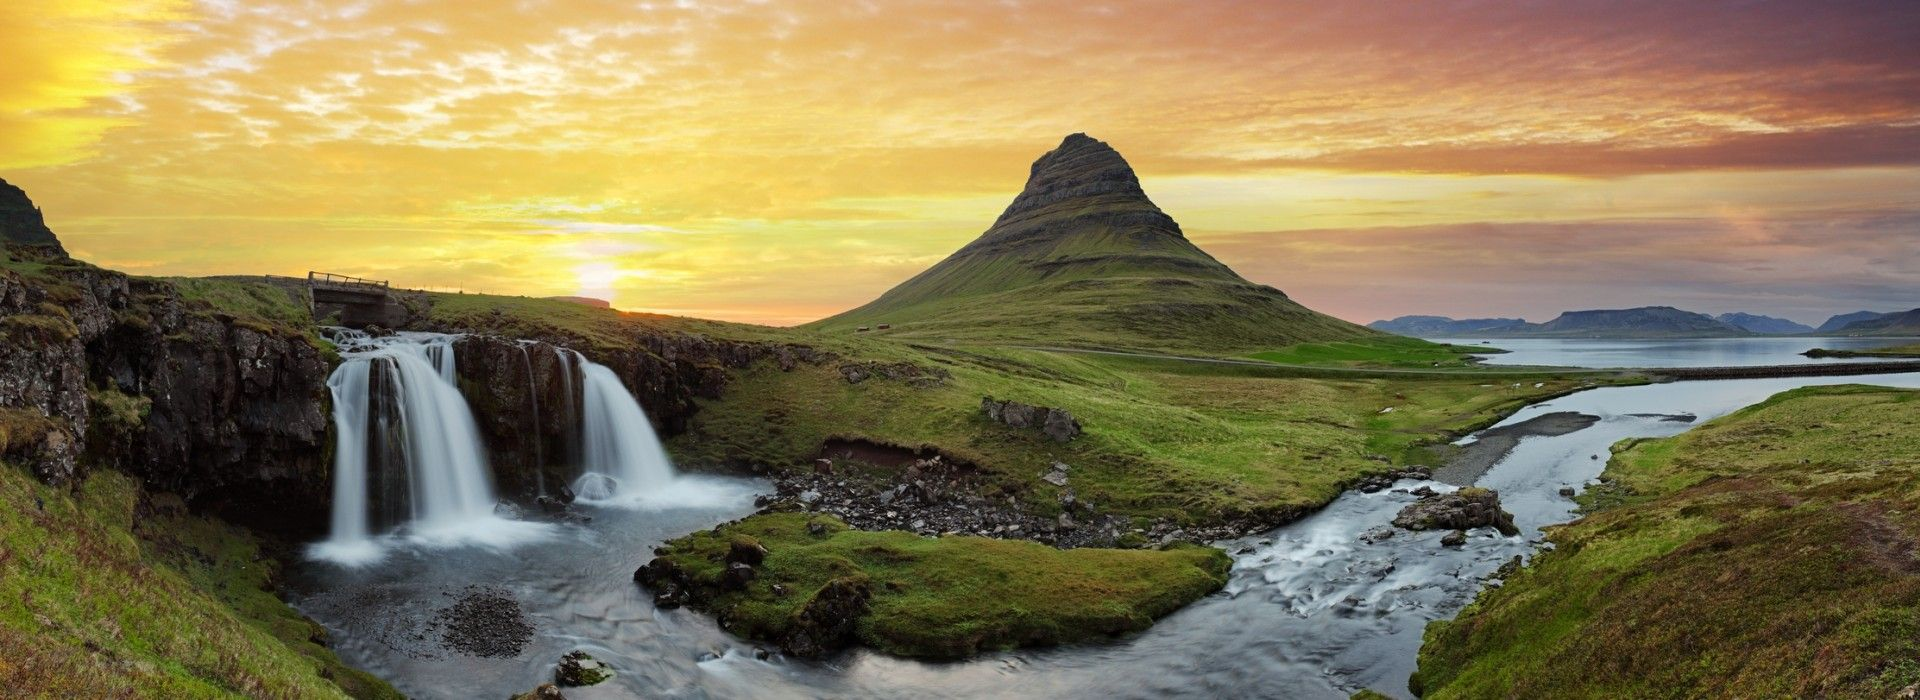 Sightseeing, attractions, culture and history Tours in Iceland